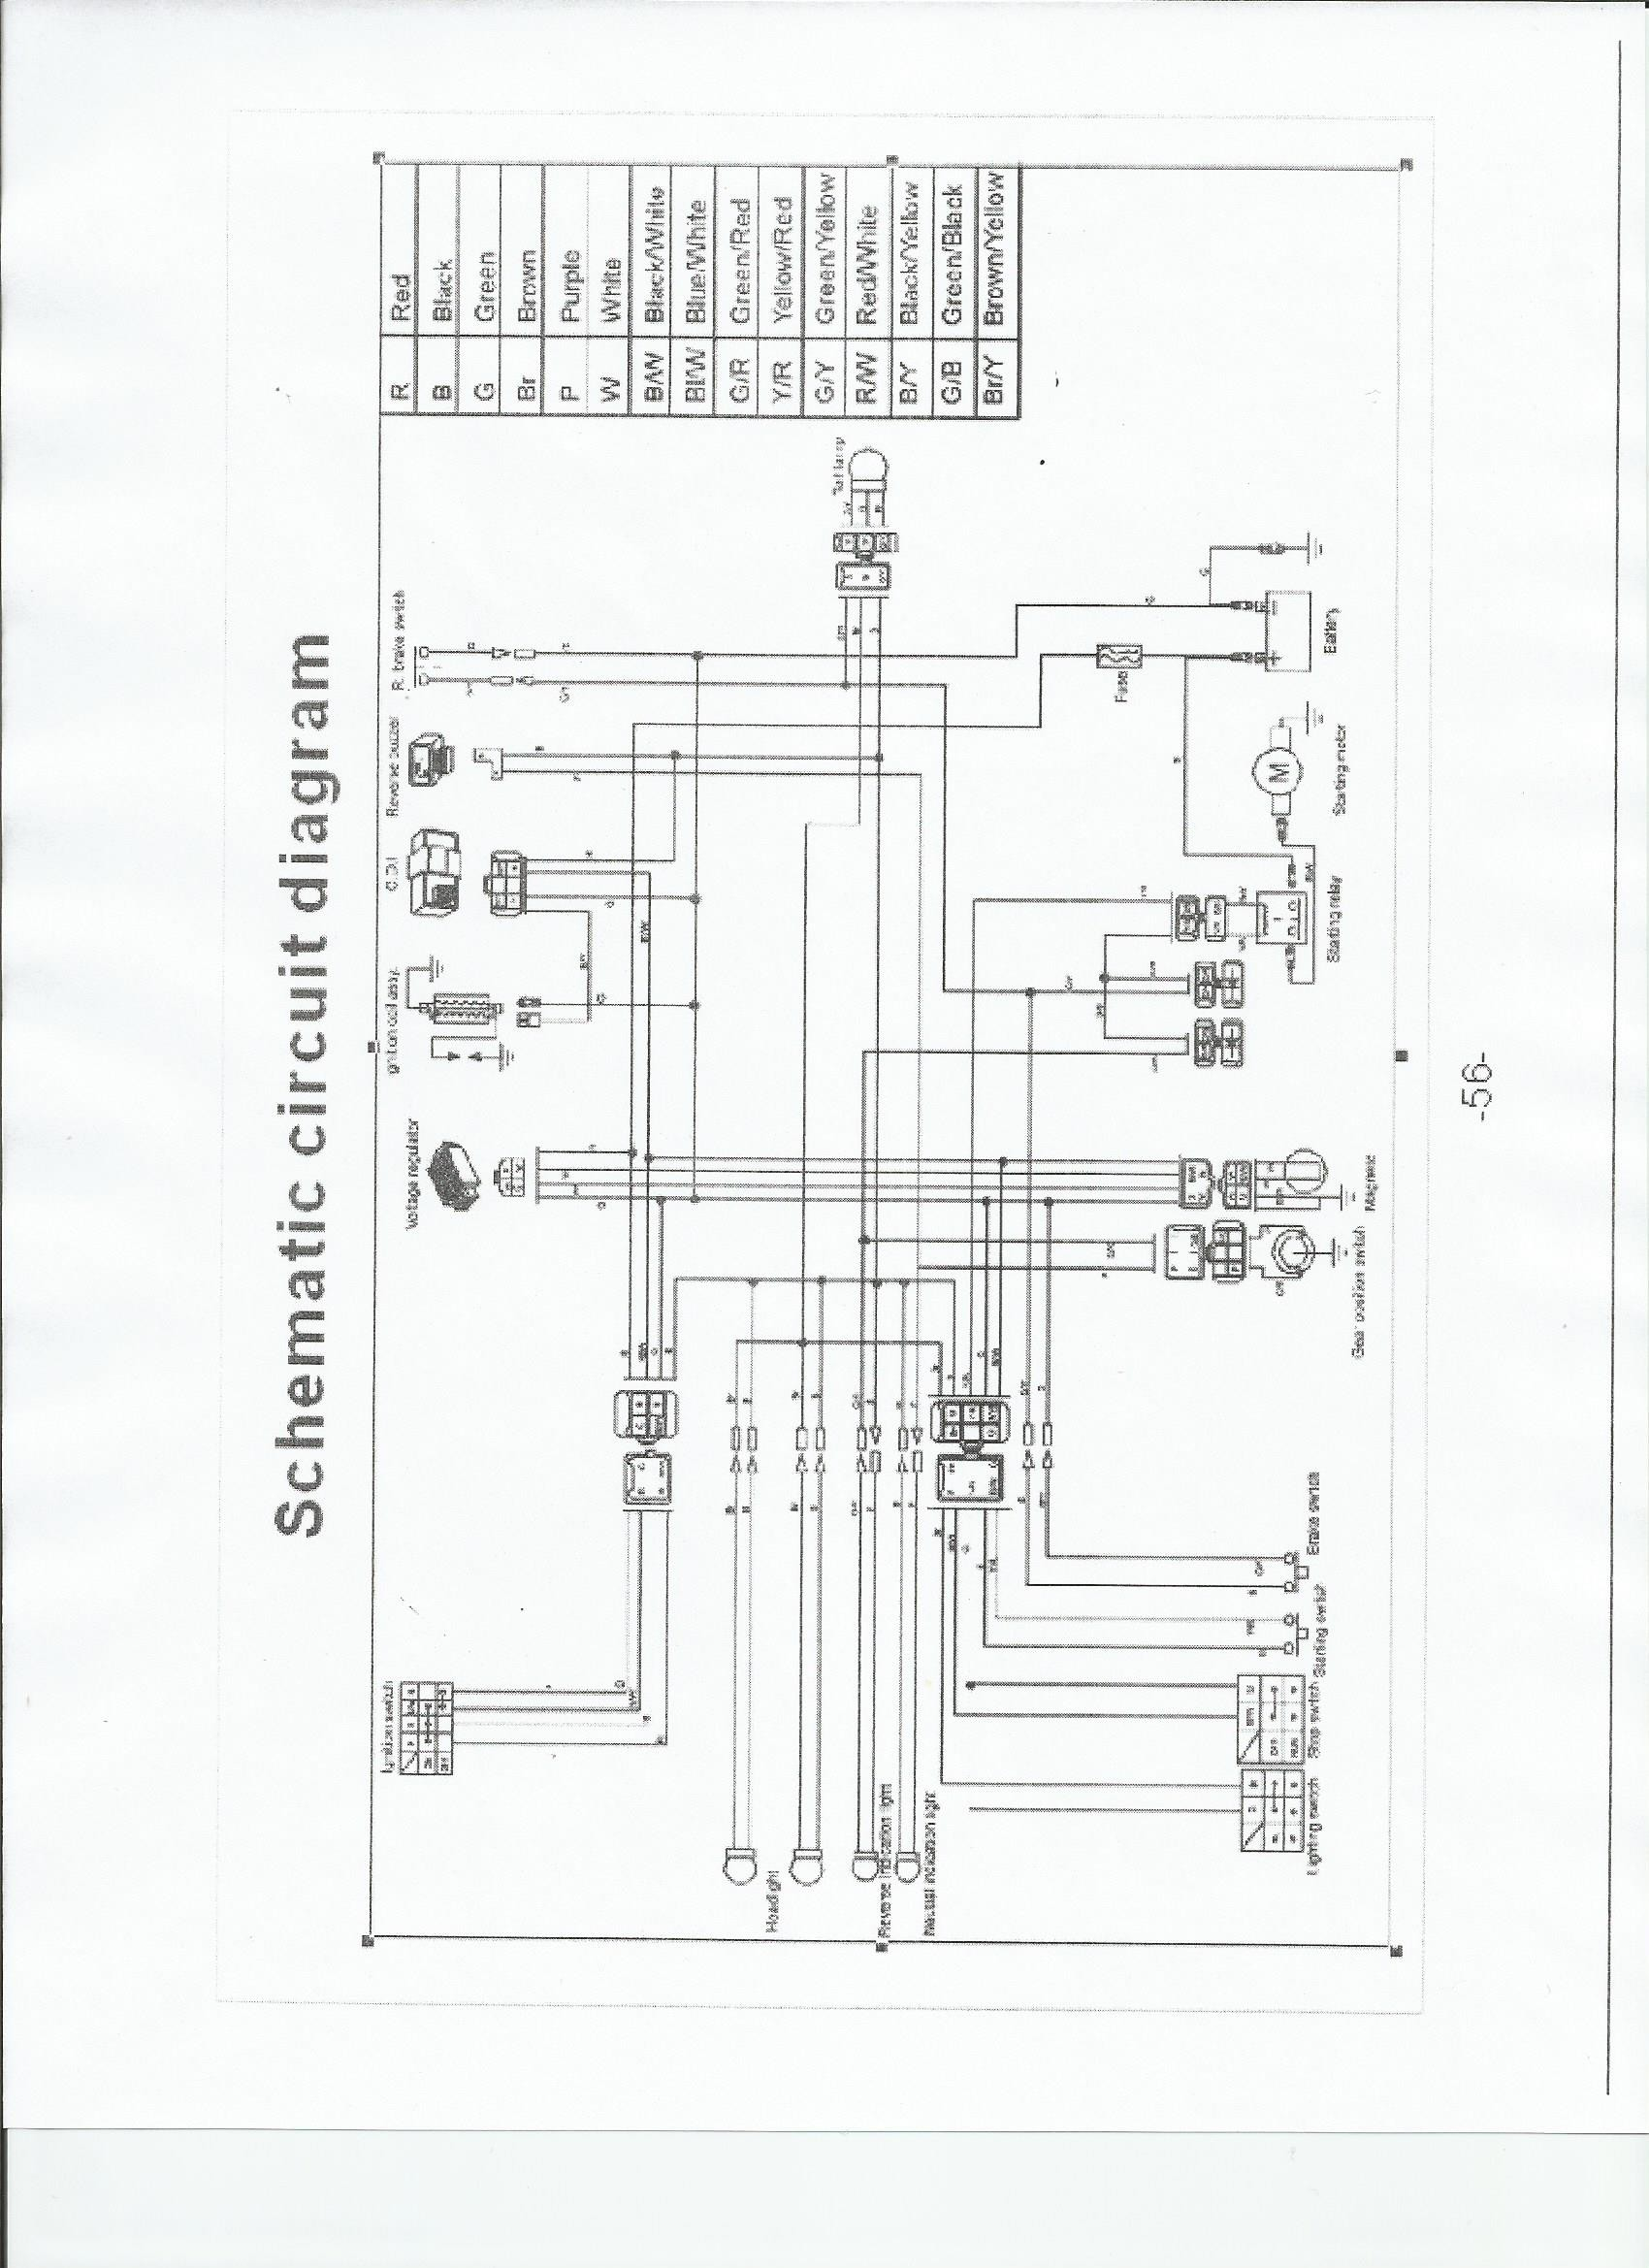 4 Wheeler Wiring Diagram | Wiring Diagram on